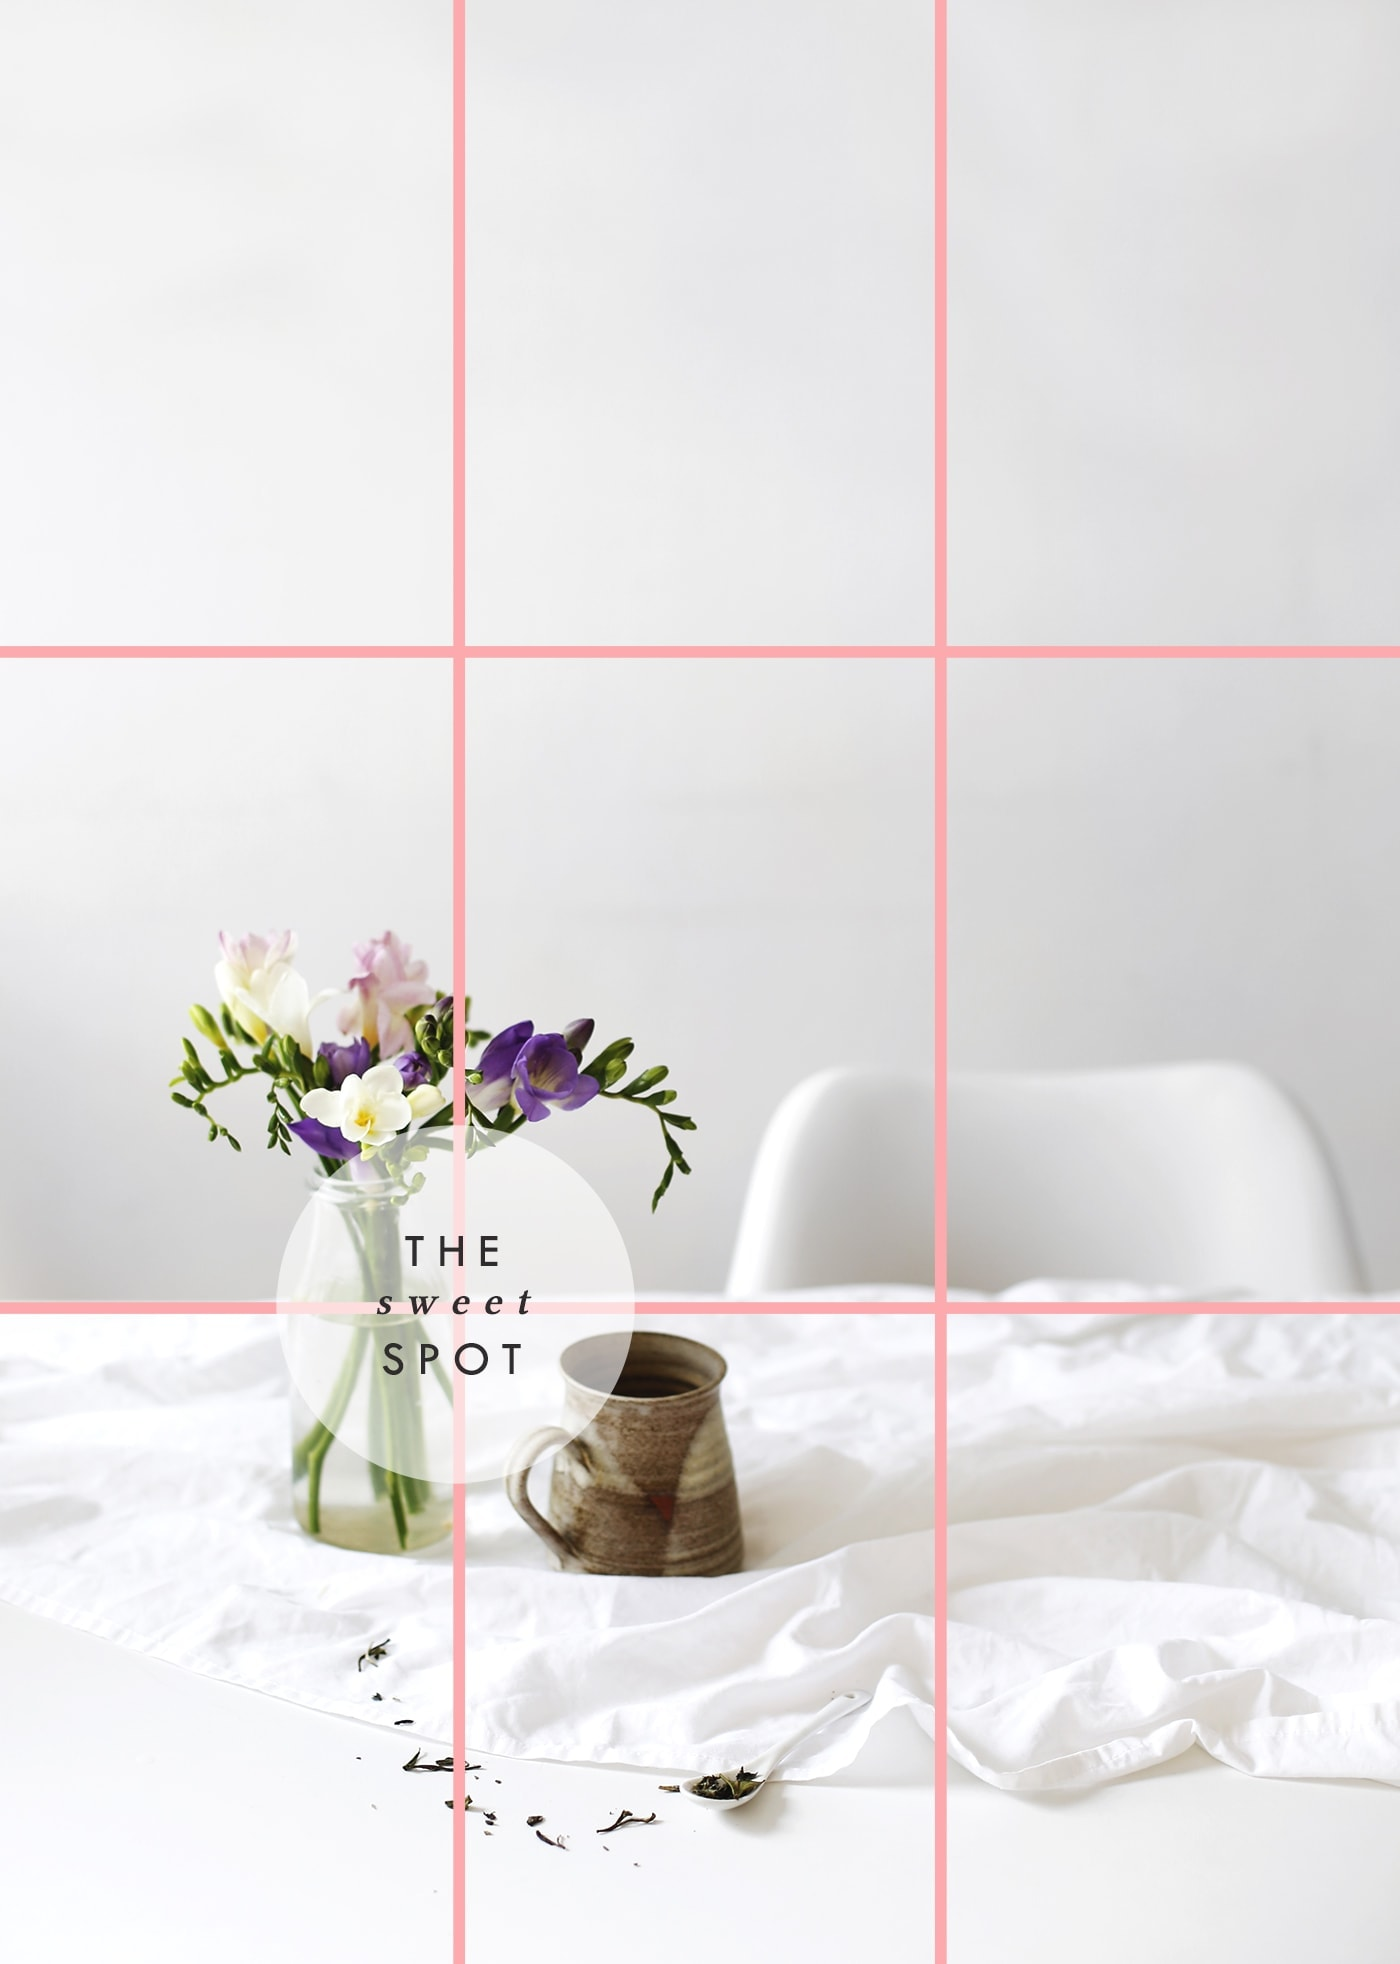 blogger photography tips | the rule of thirds